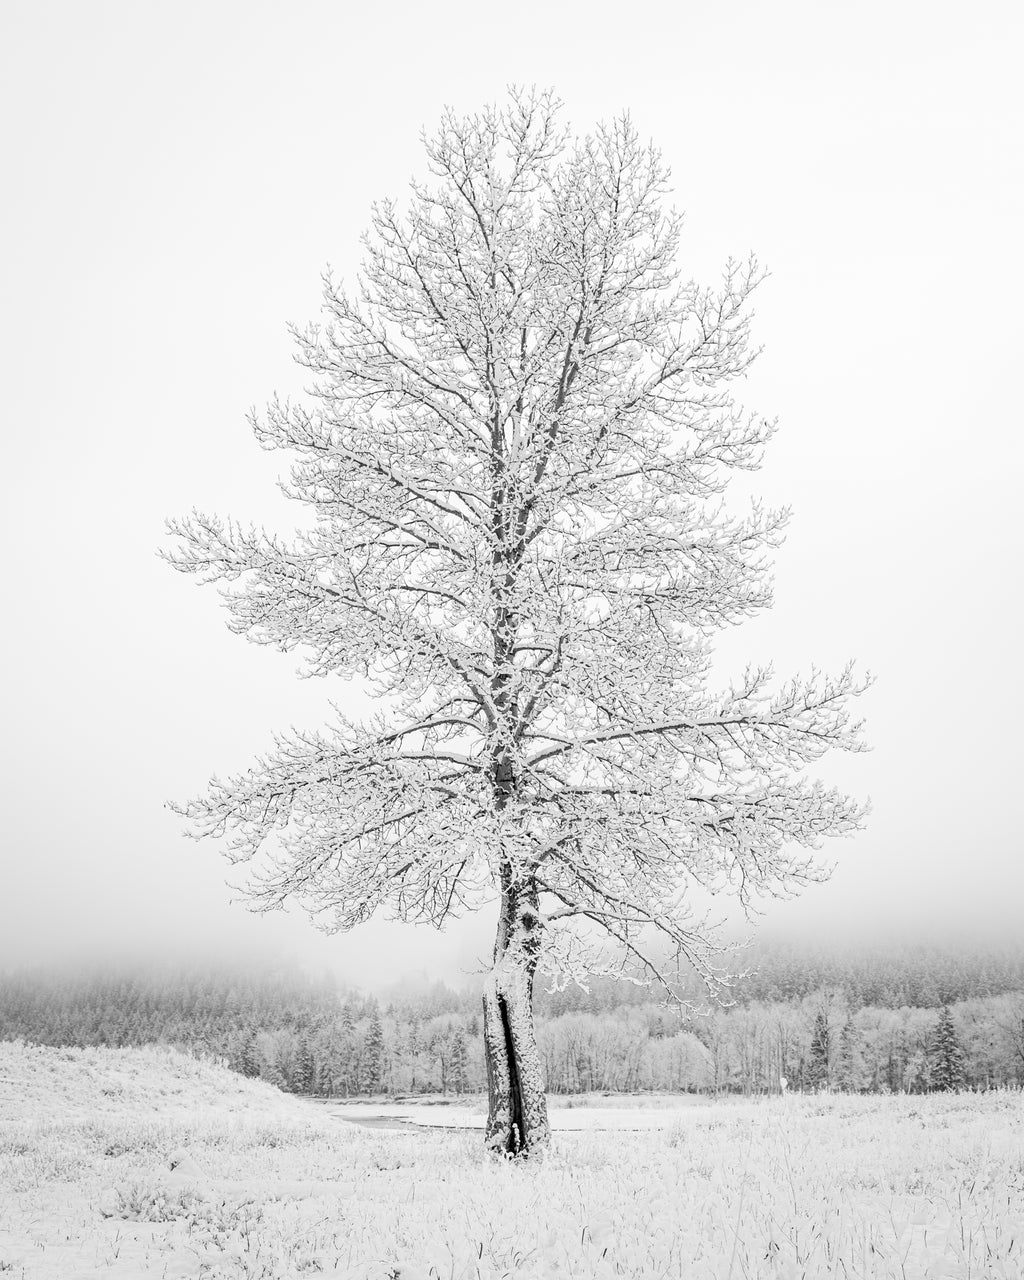 Poplar tree covered by frost and snow on misty and foggy morning at Glenbow Ranch Provincial Park, Alberta